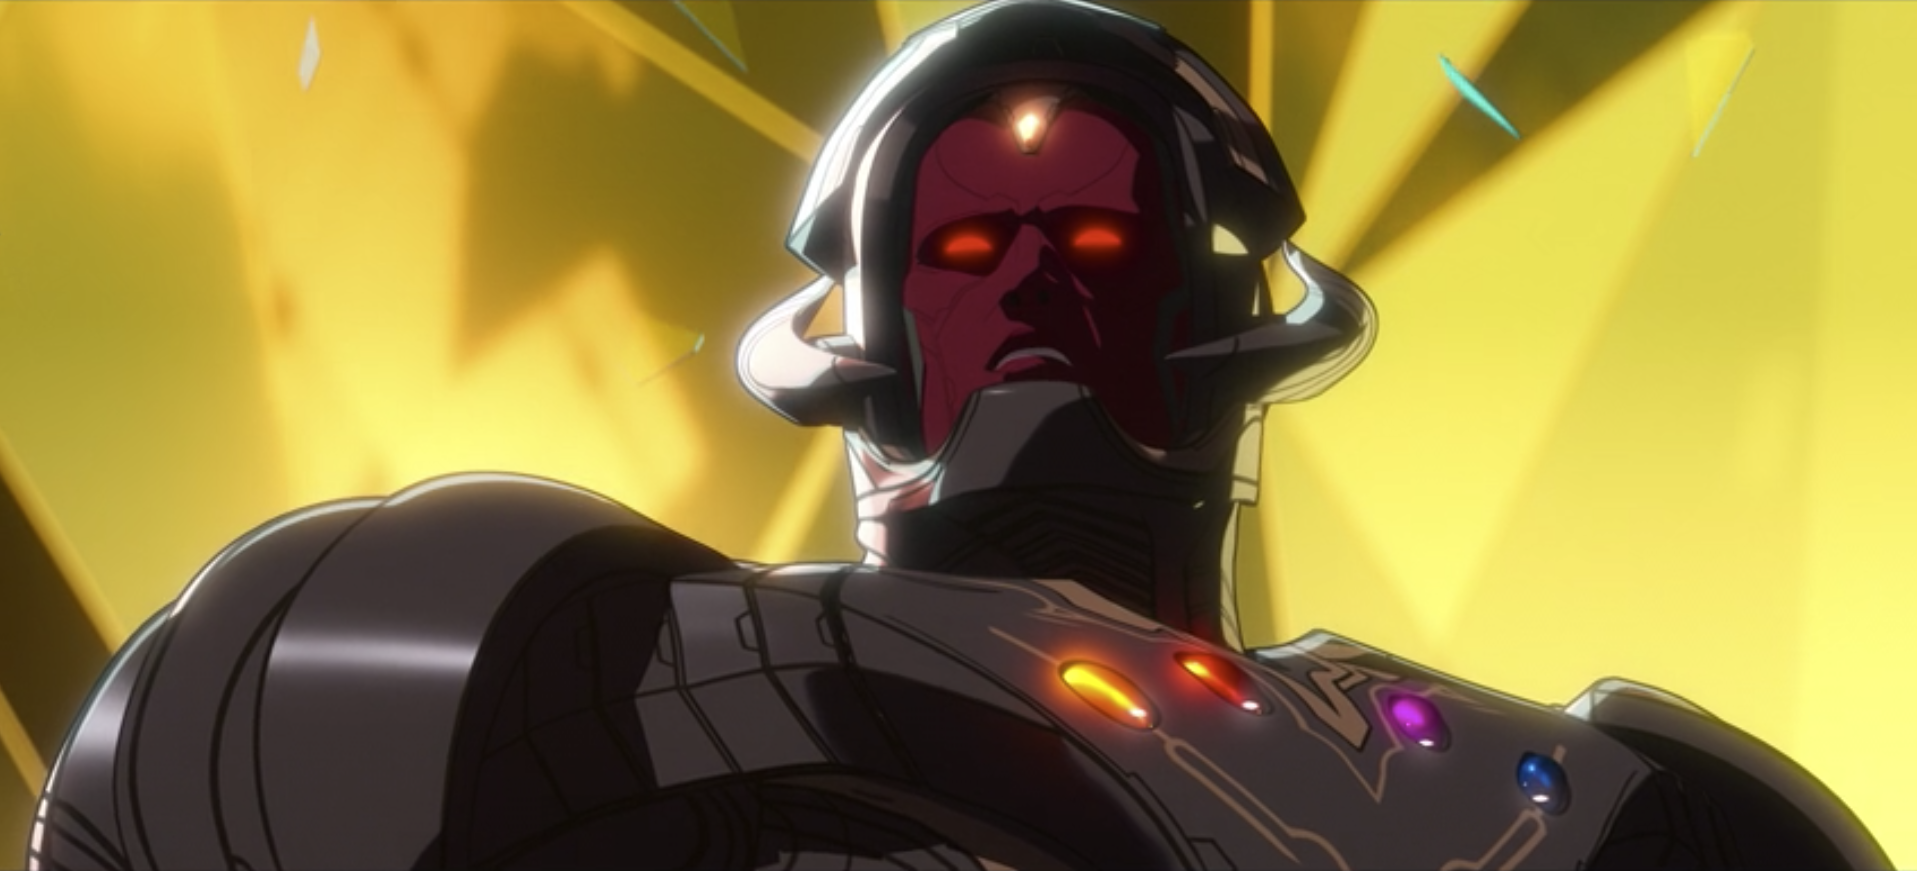 Ultron, in Vision's body with the Infinity Stones